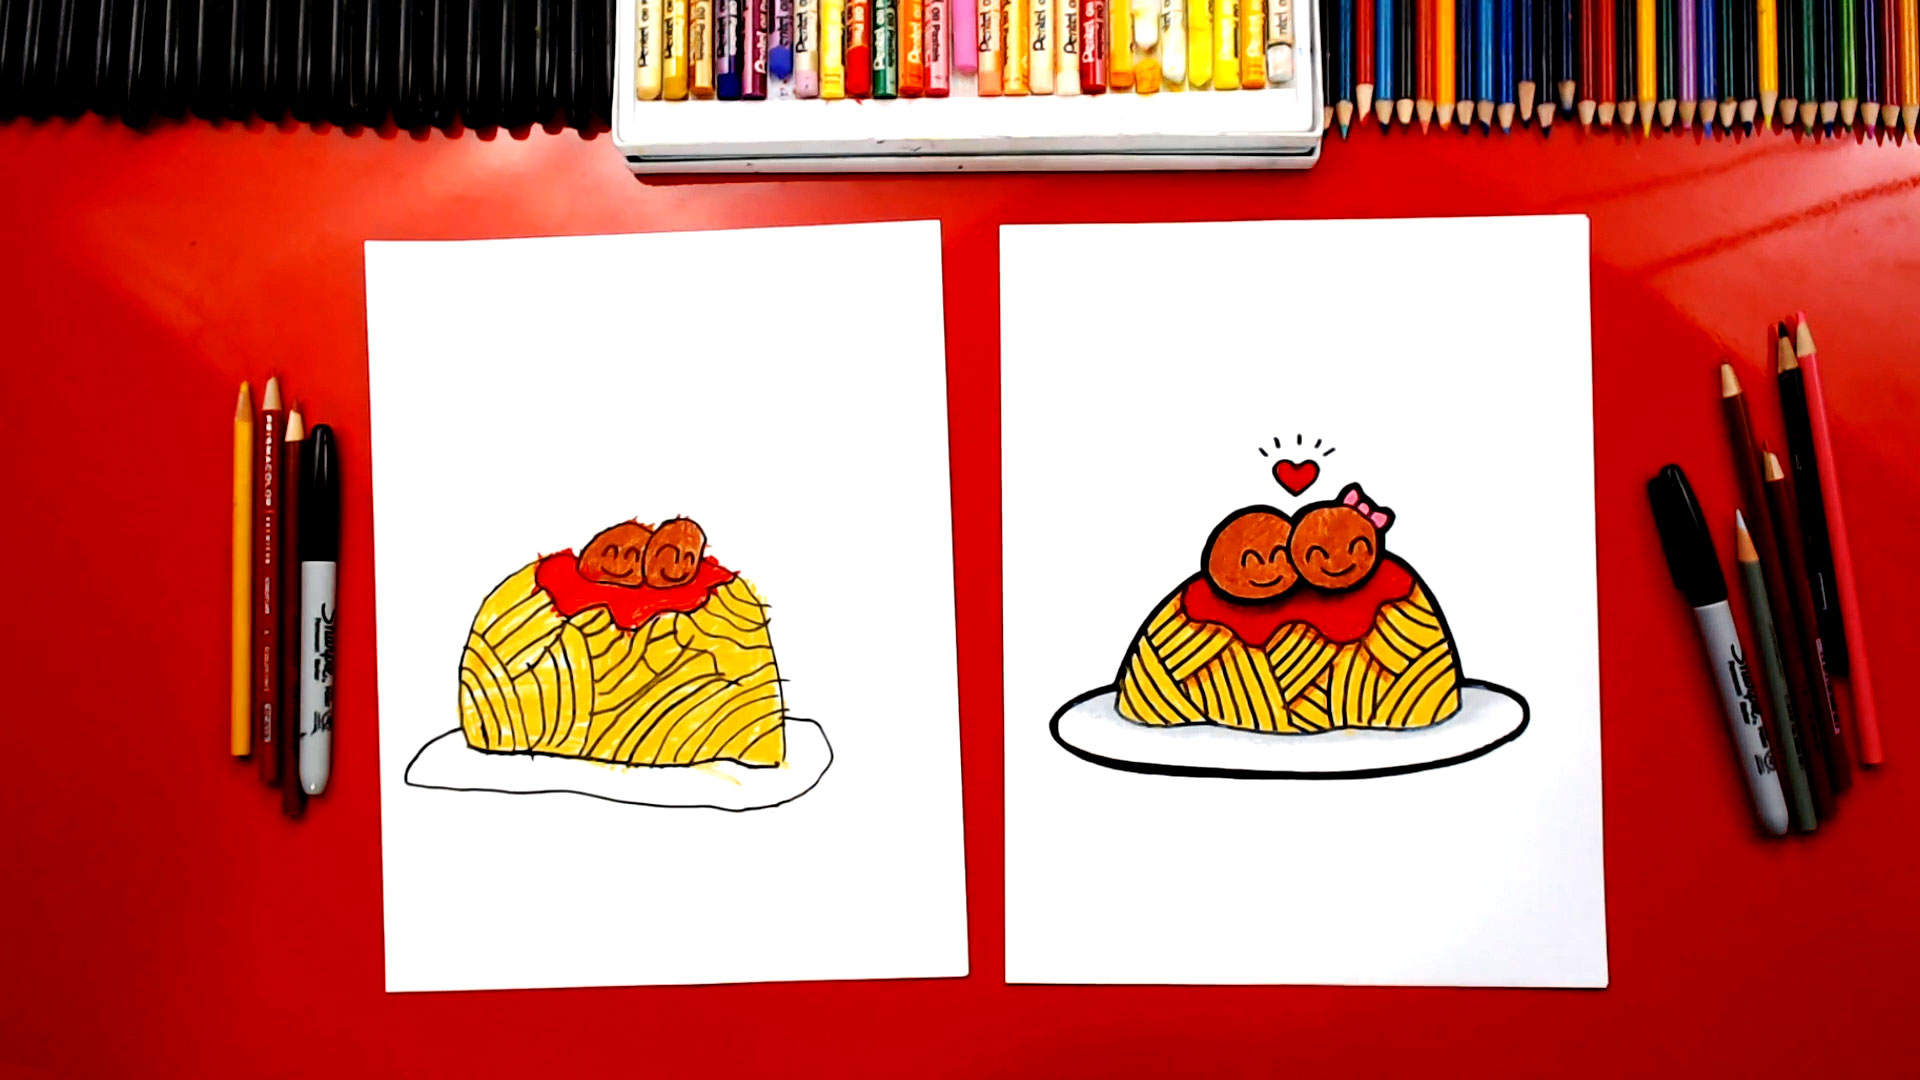 How To Draw Funny Spaghetti And Meatballs - Art For Kids Hub